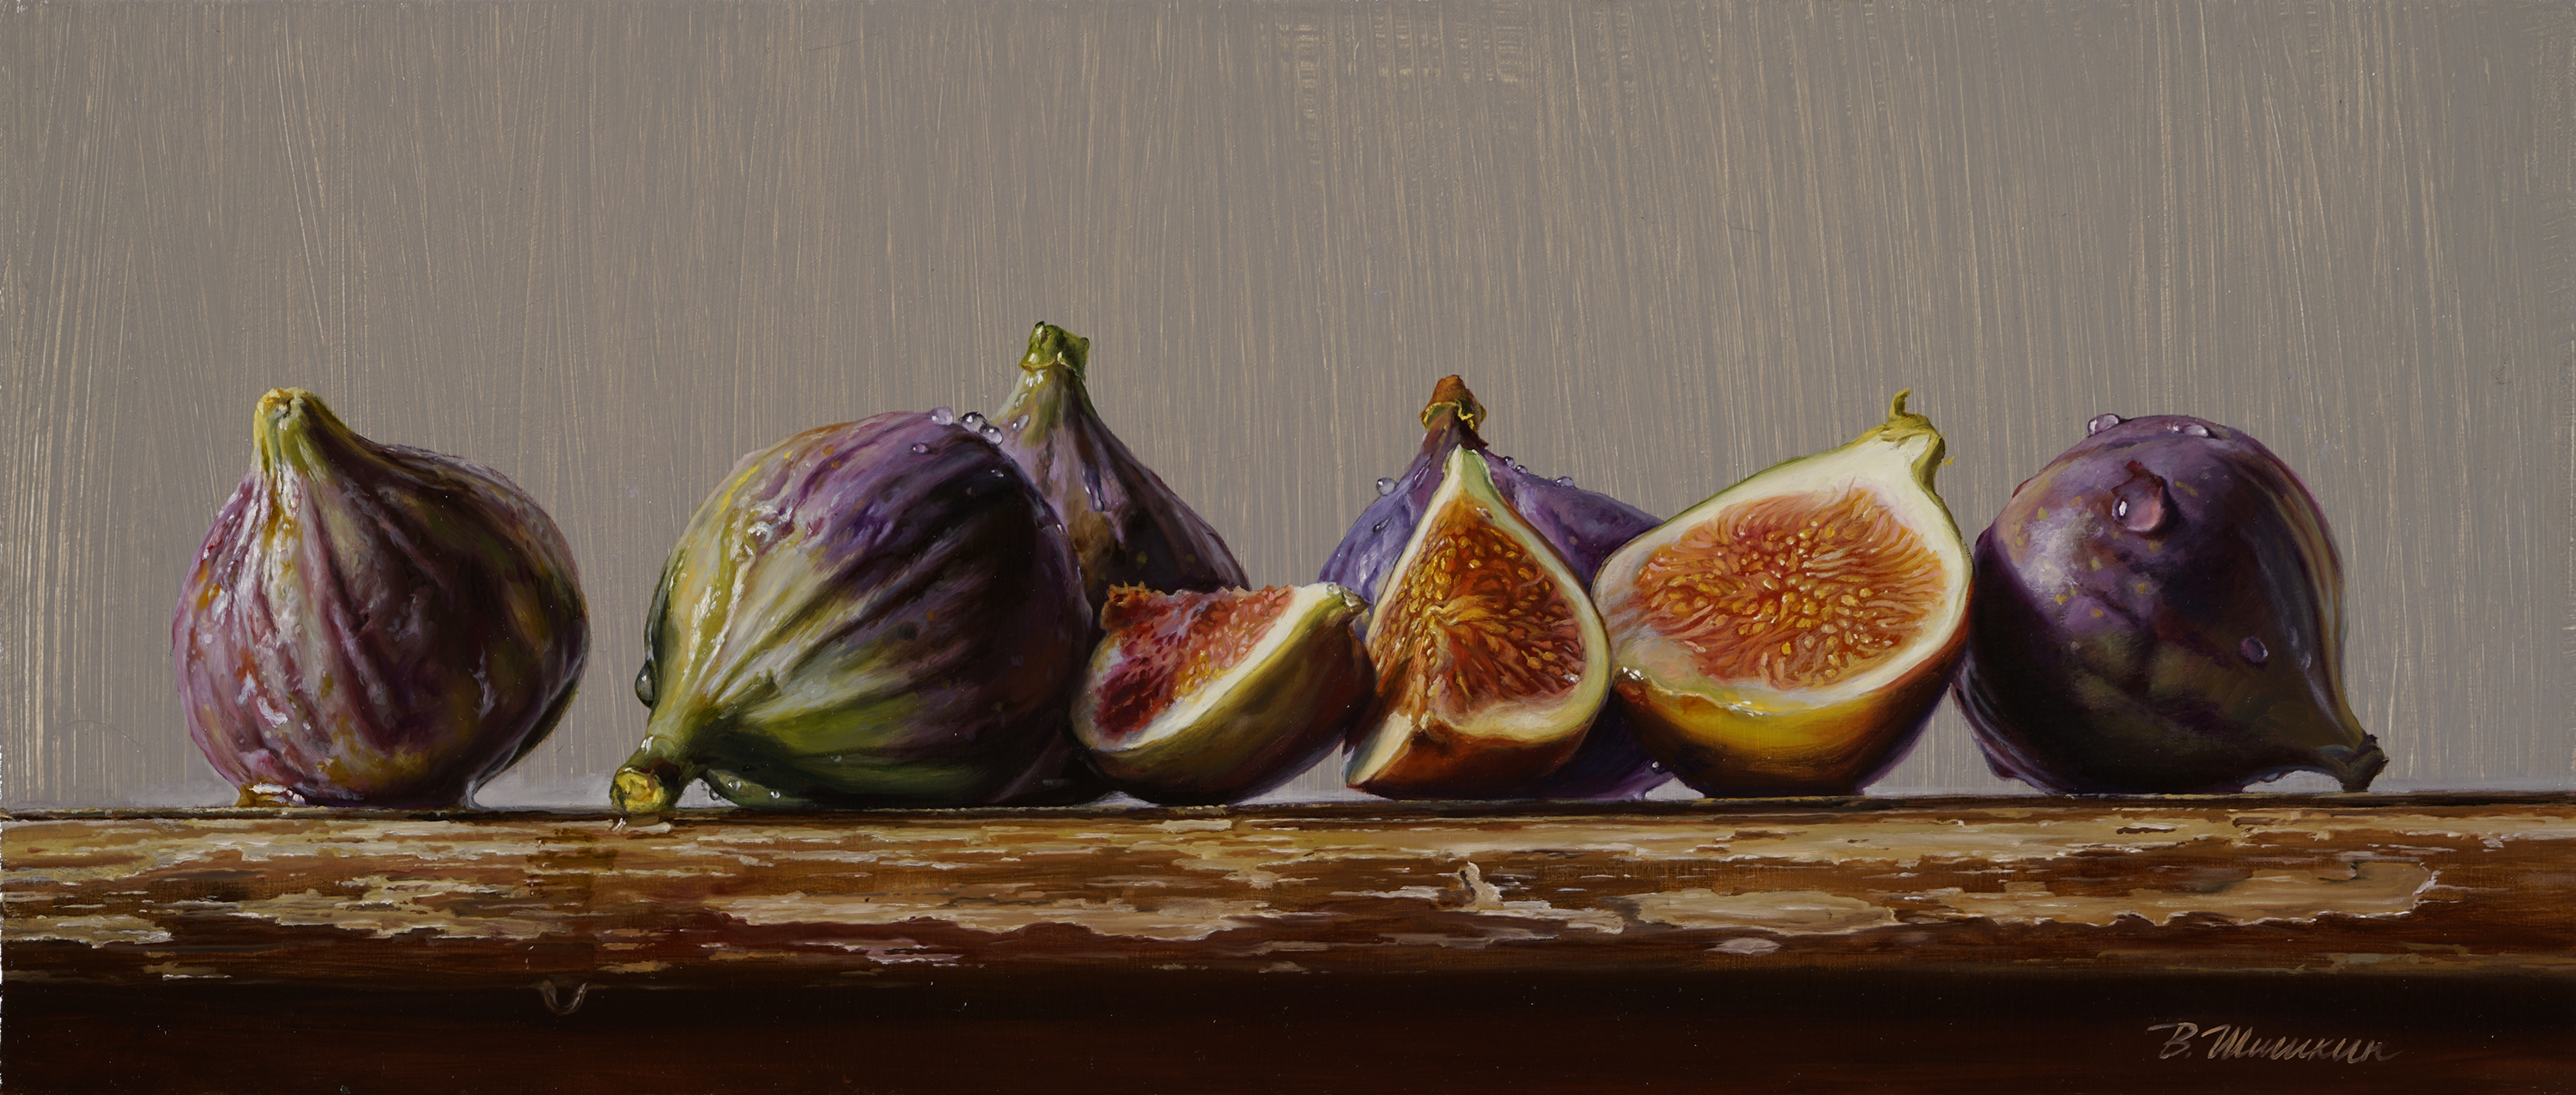 Figs on a light